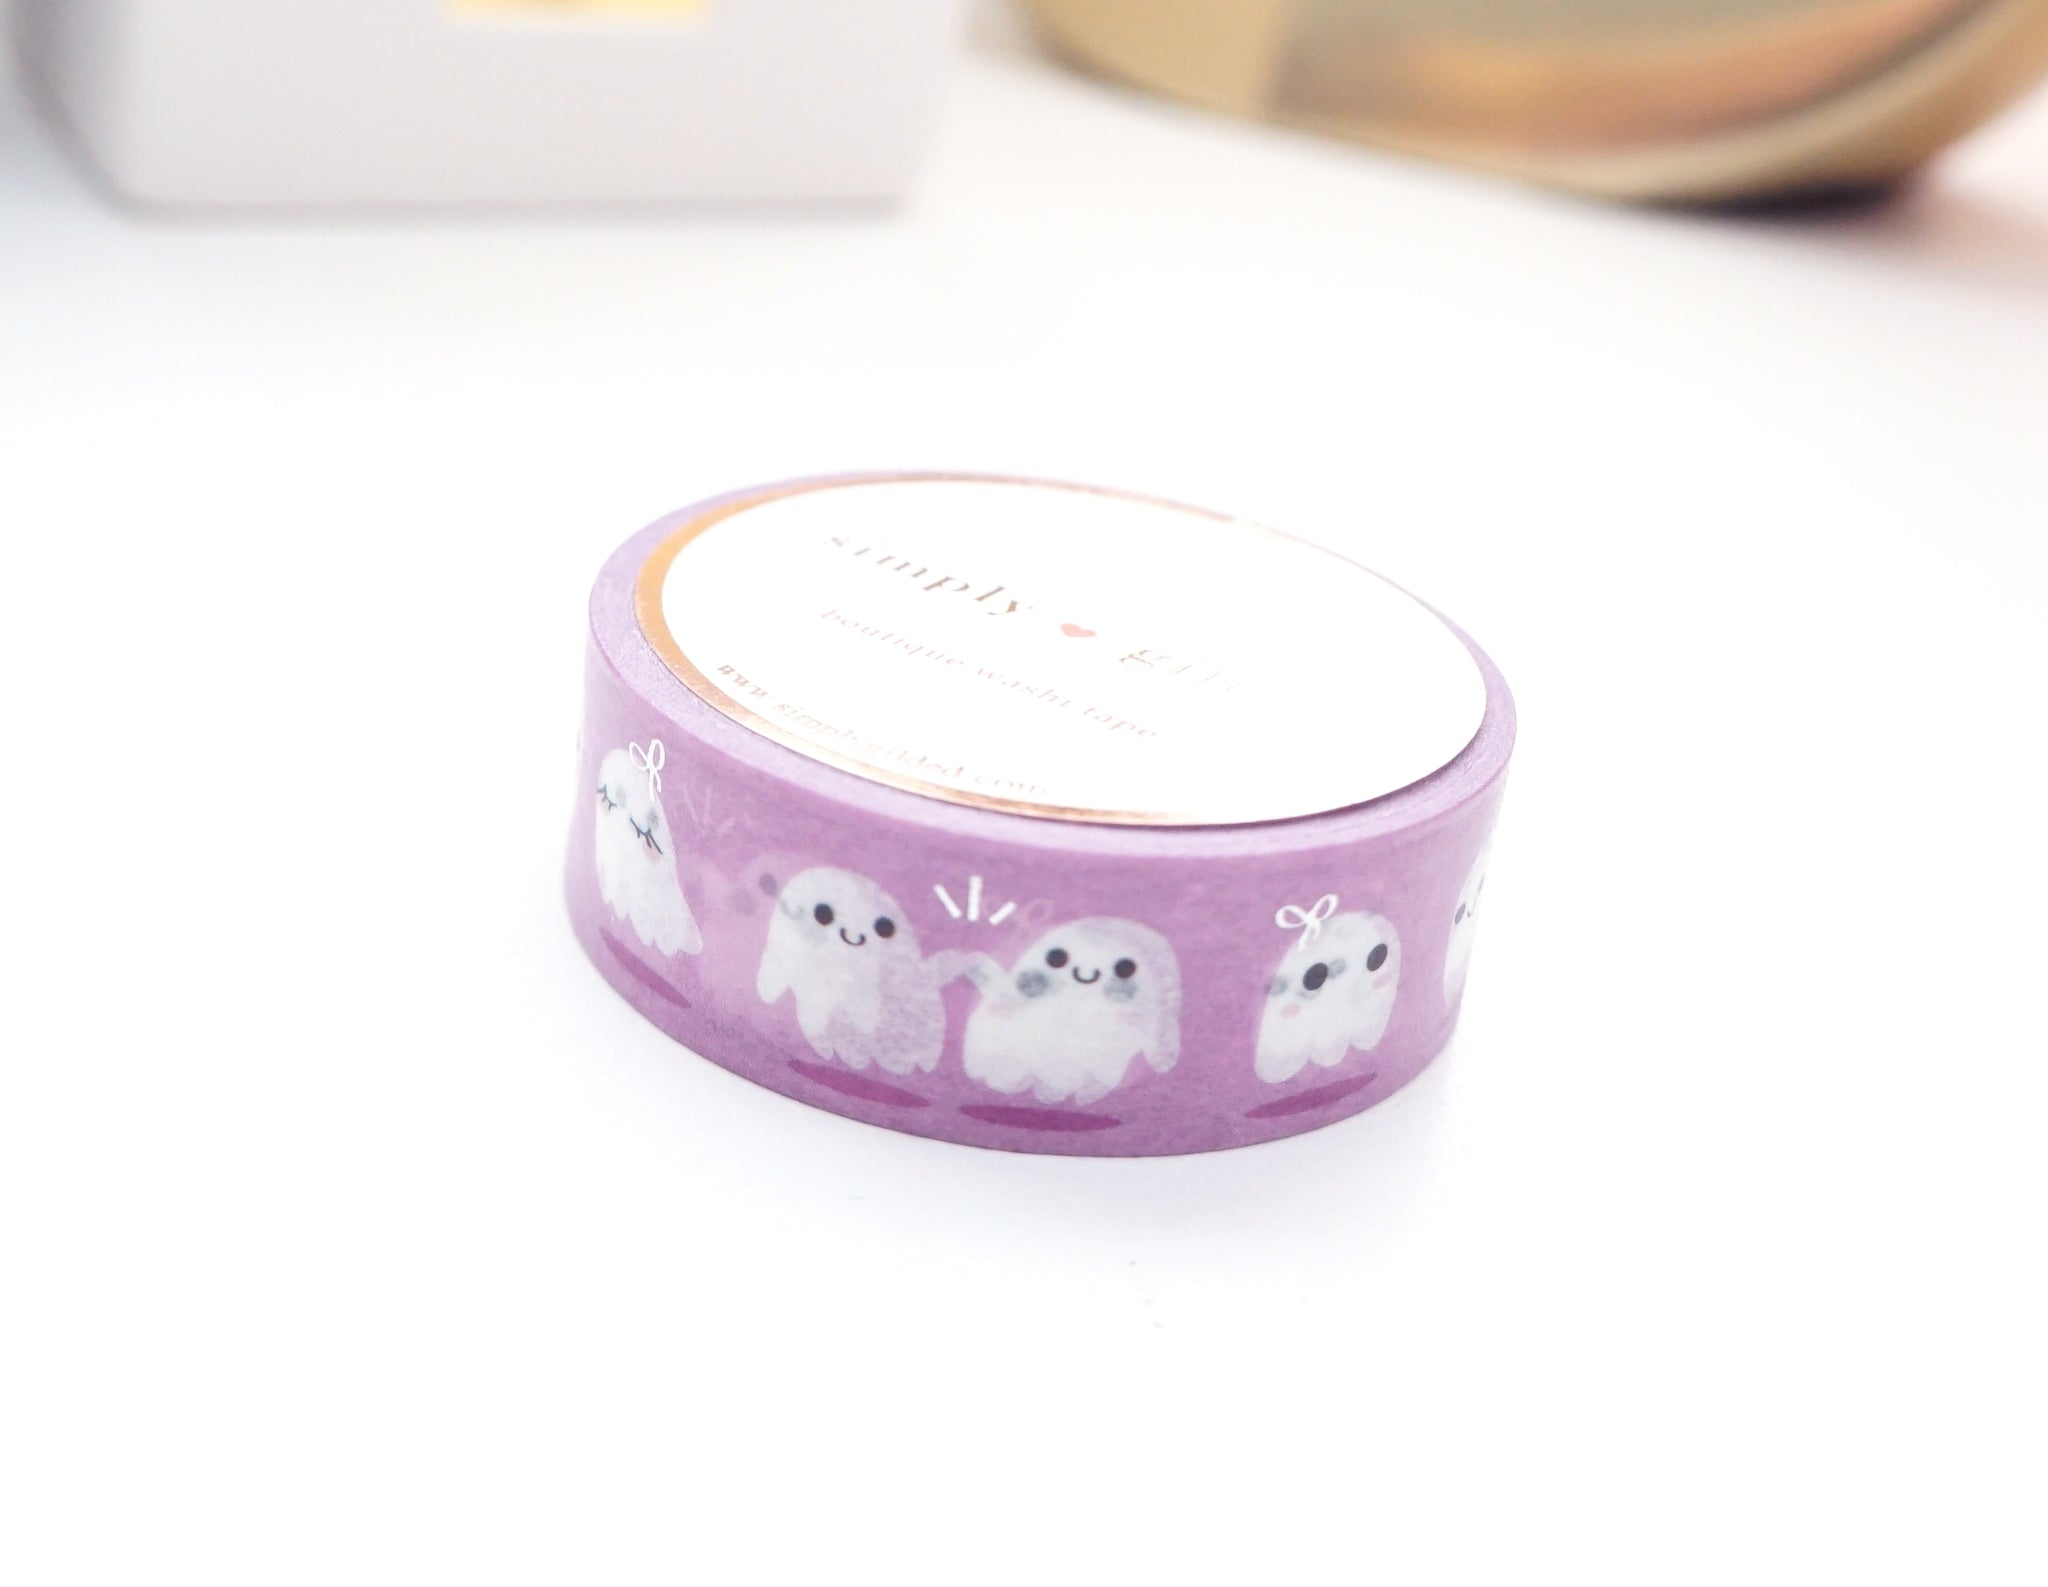 WASHI TAPE 15mm - GHOST FRIENDS 3.0 LILAC + holographic foil (September 20 Release)